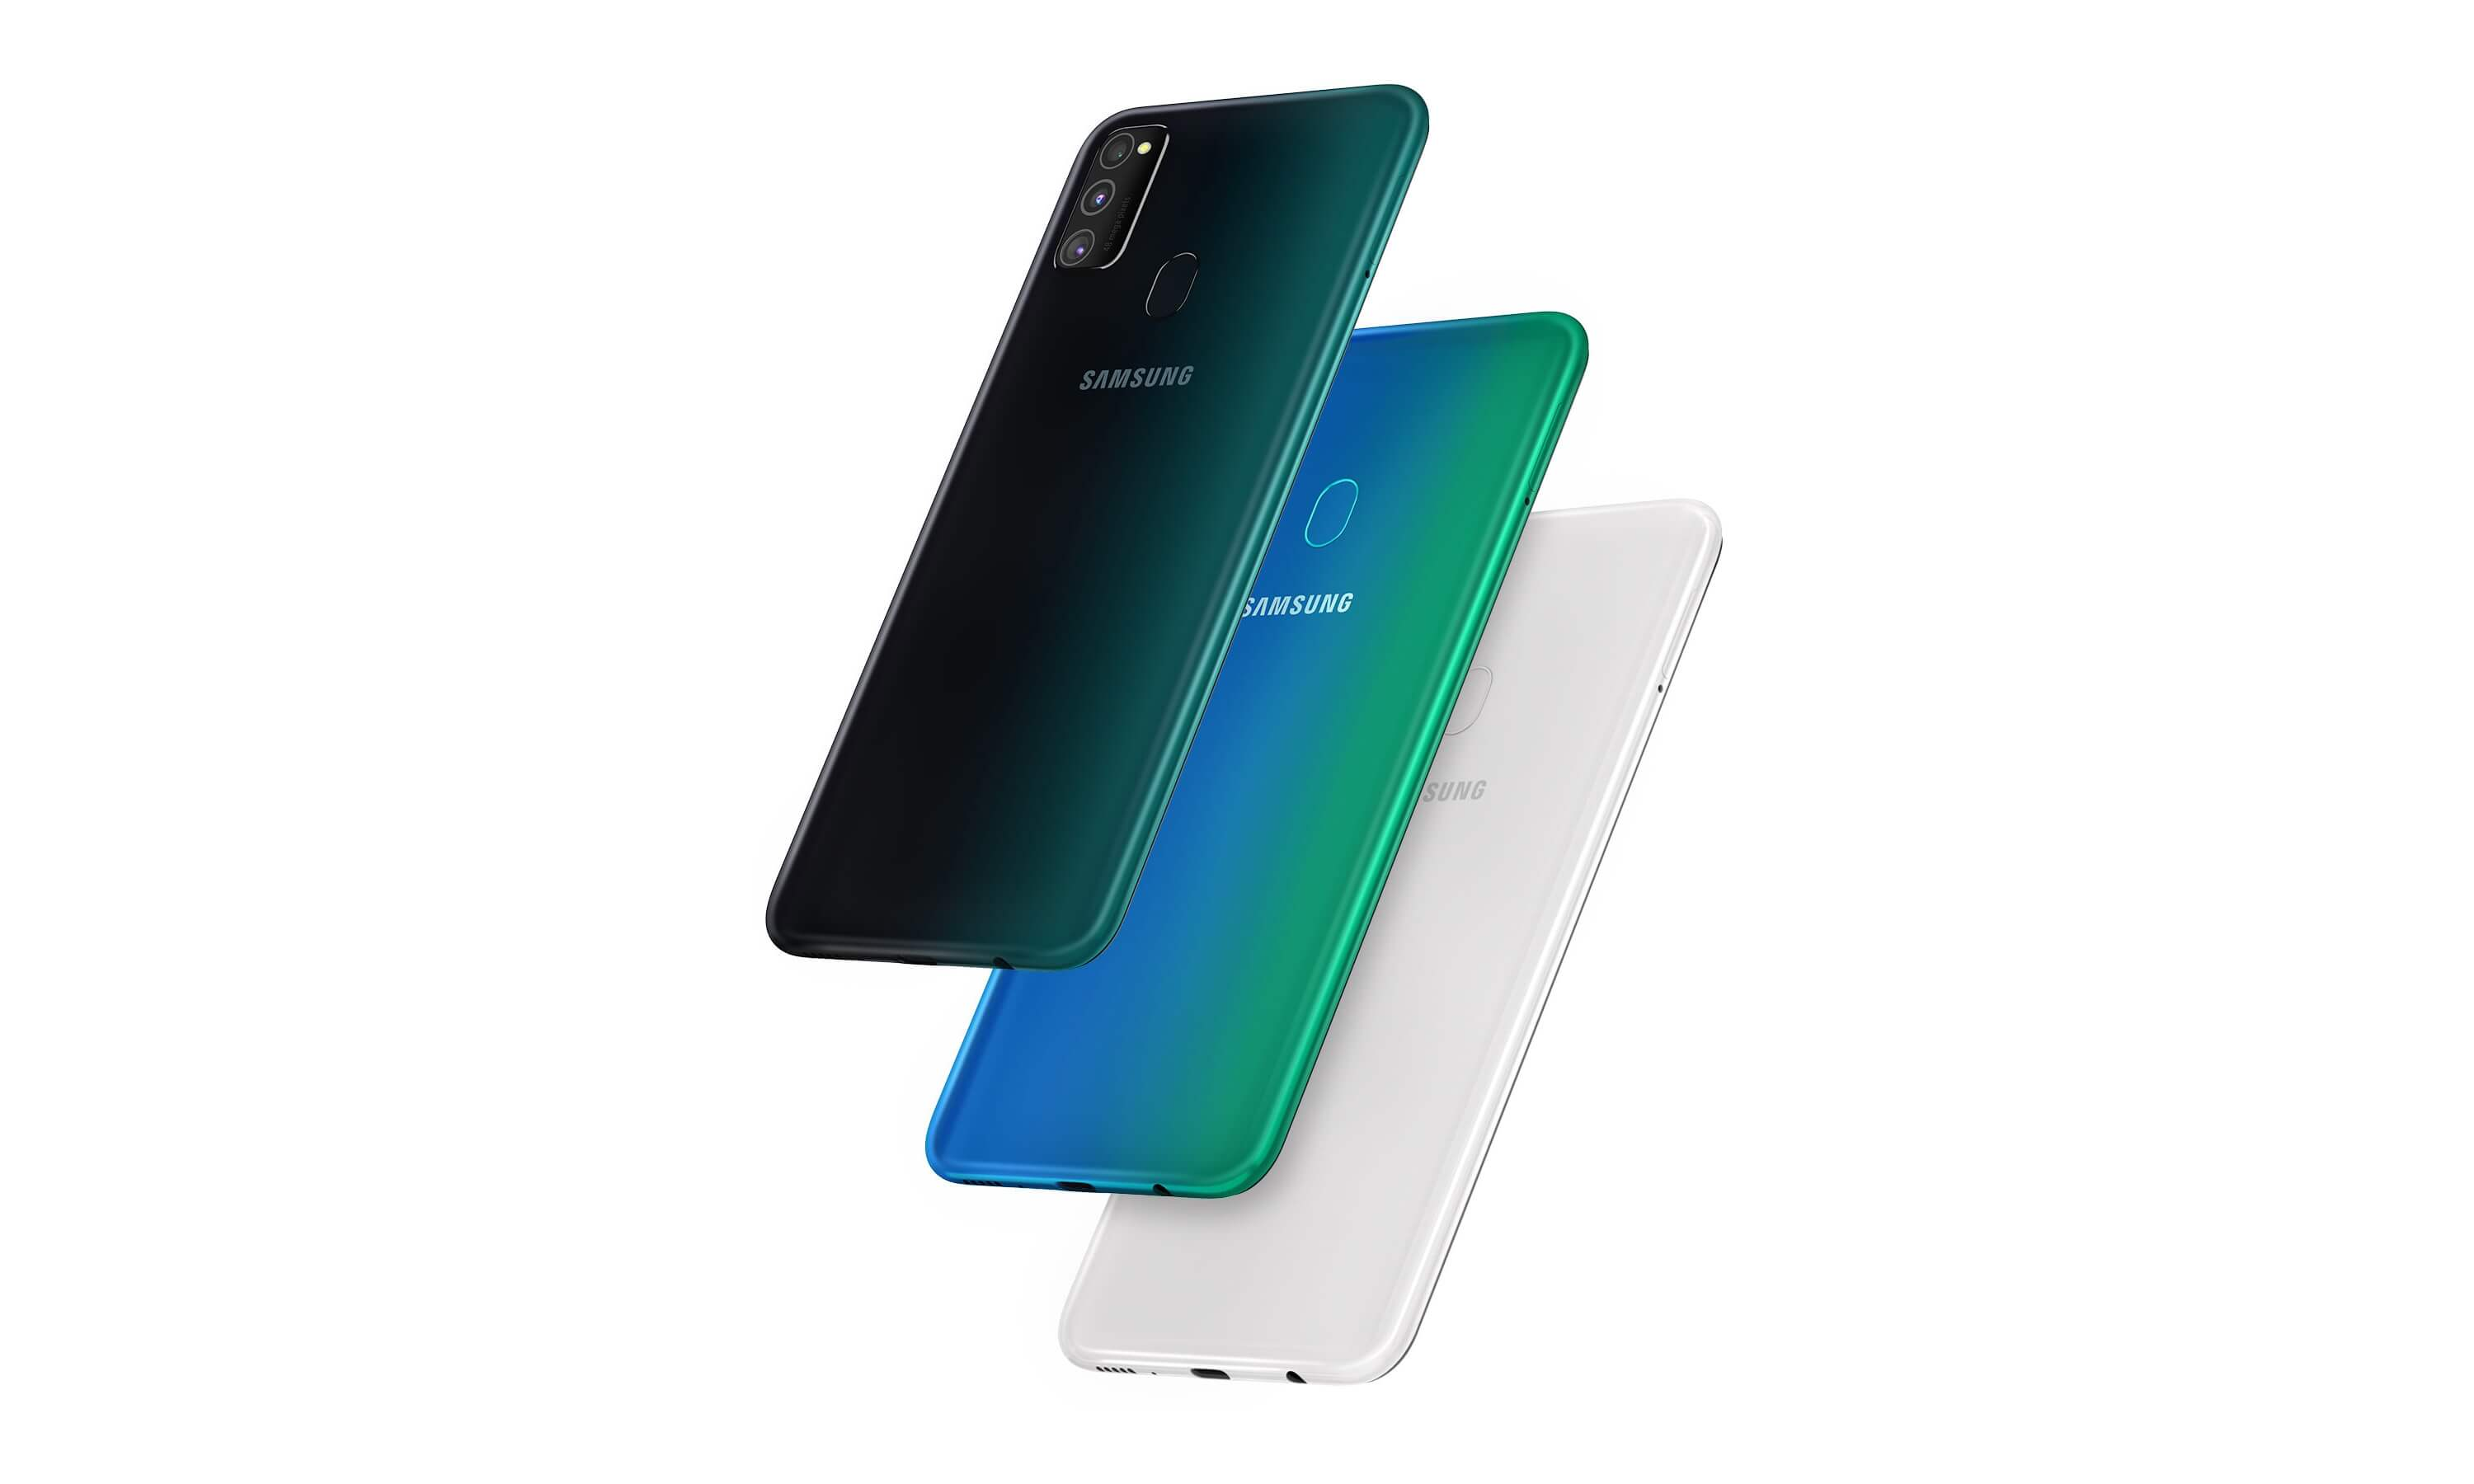 Galaxy M30s colors